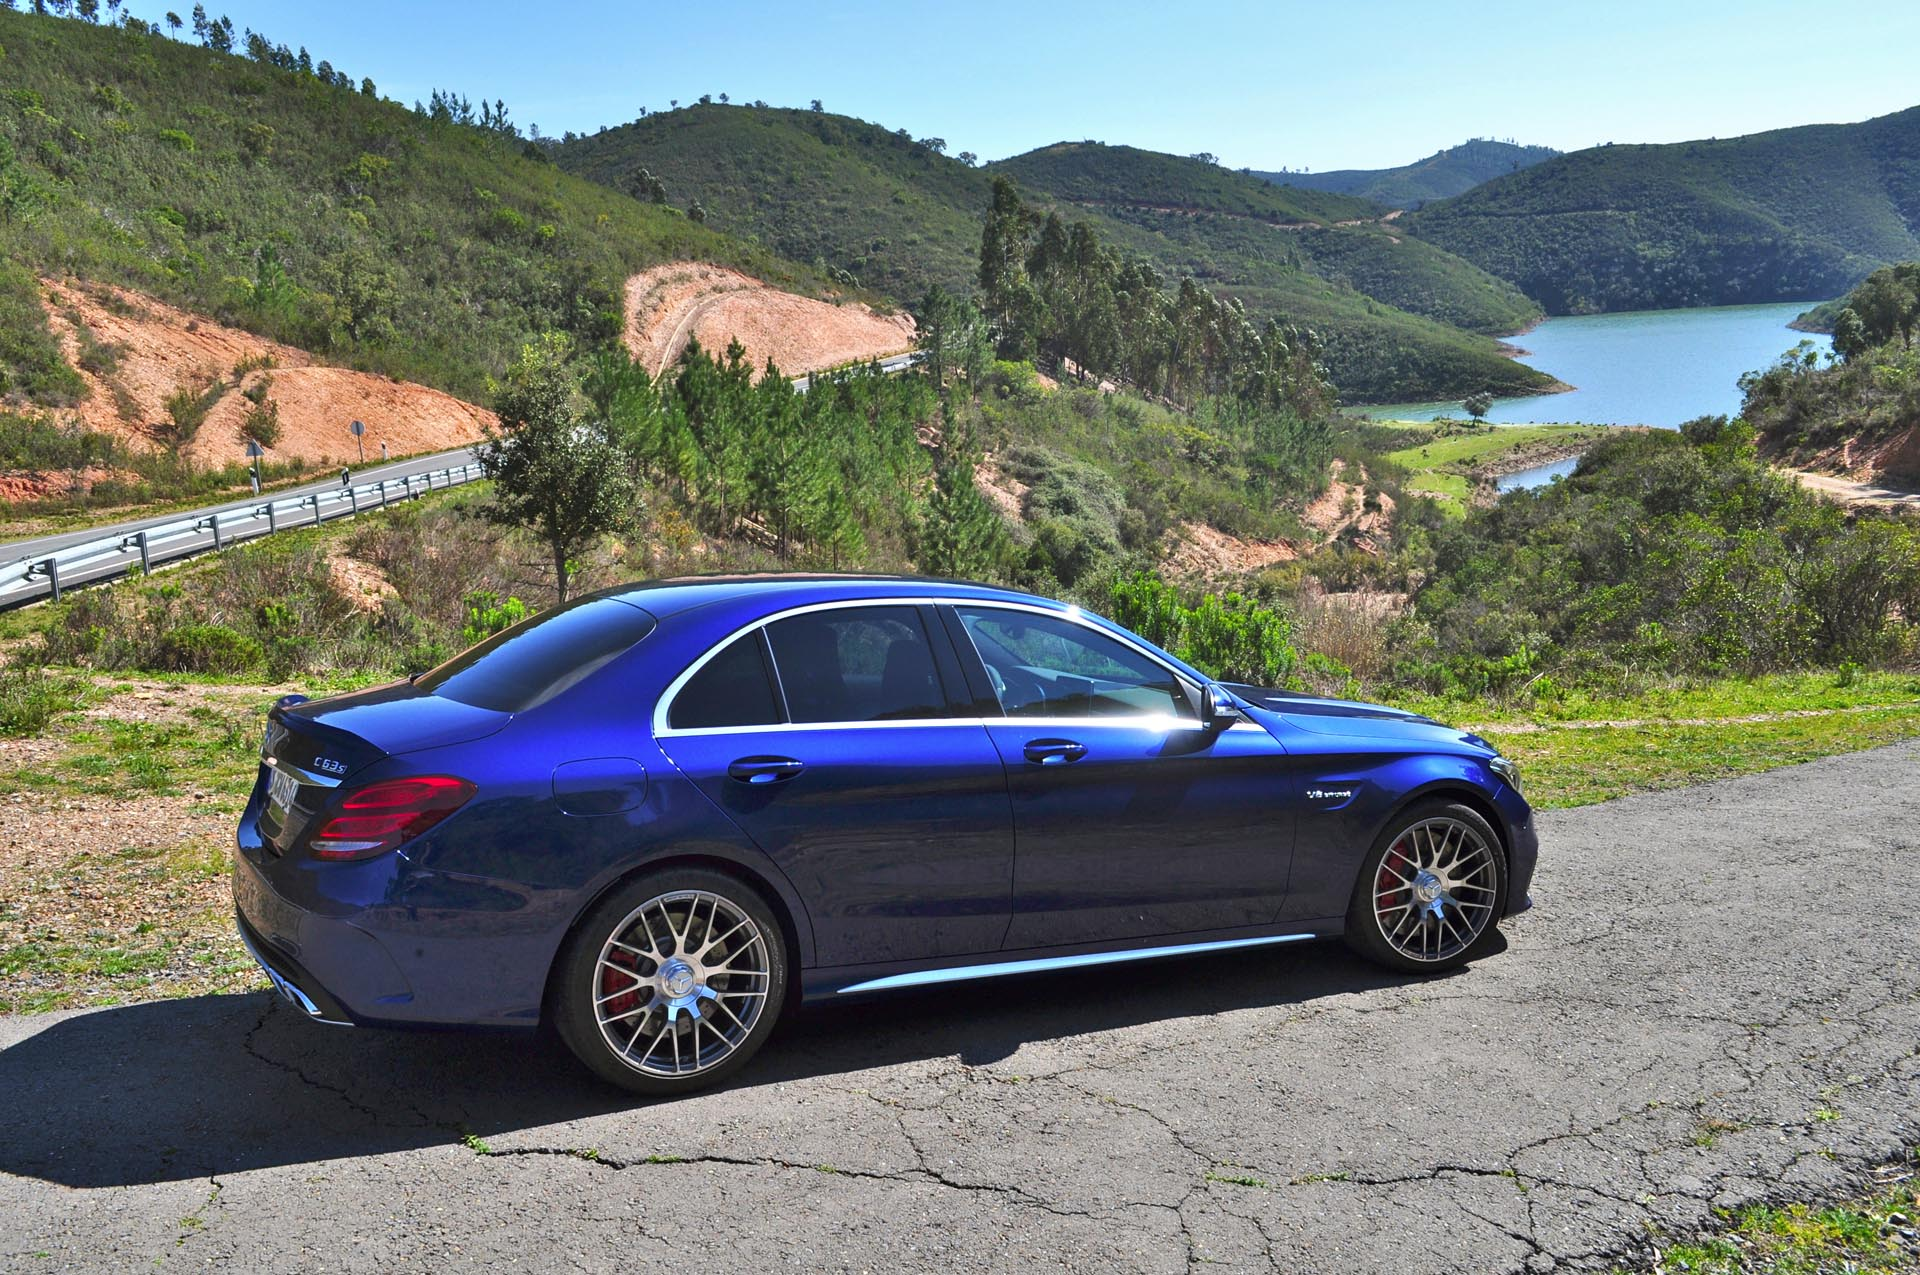 After spending a day driving the C 63 S on both twisty roads of southern Portugal and the Portimao race track, here's how it stacks up from behind the wheel.